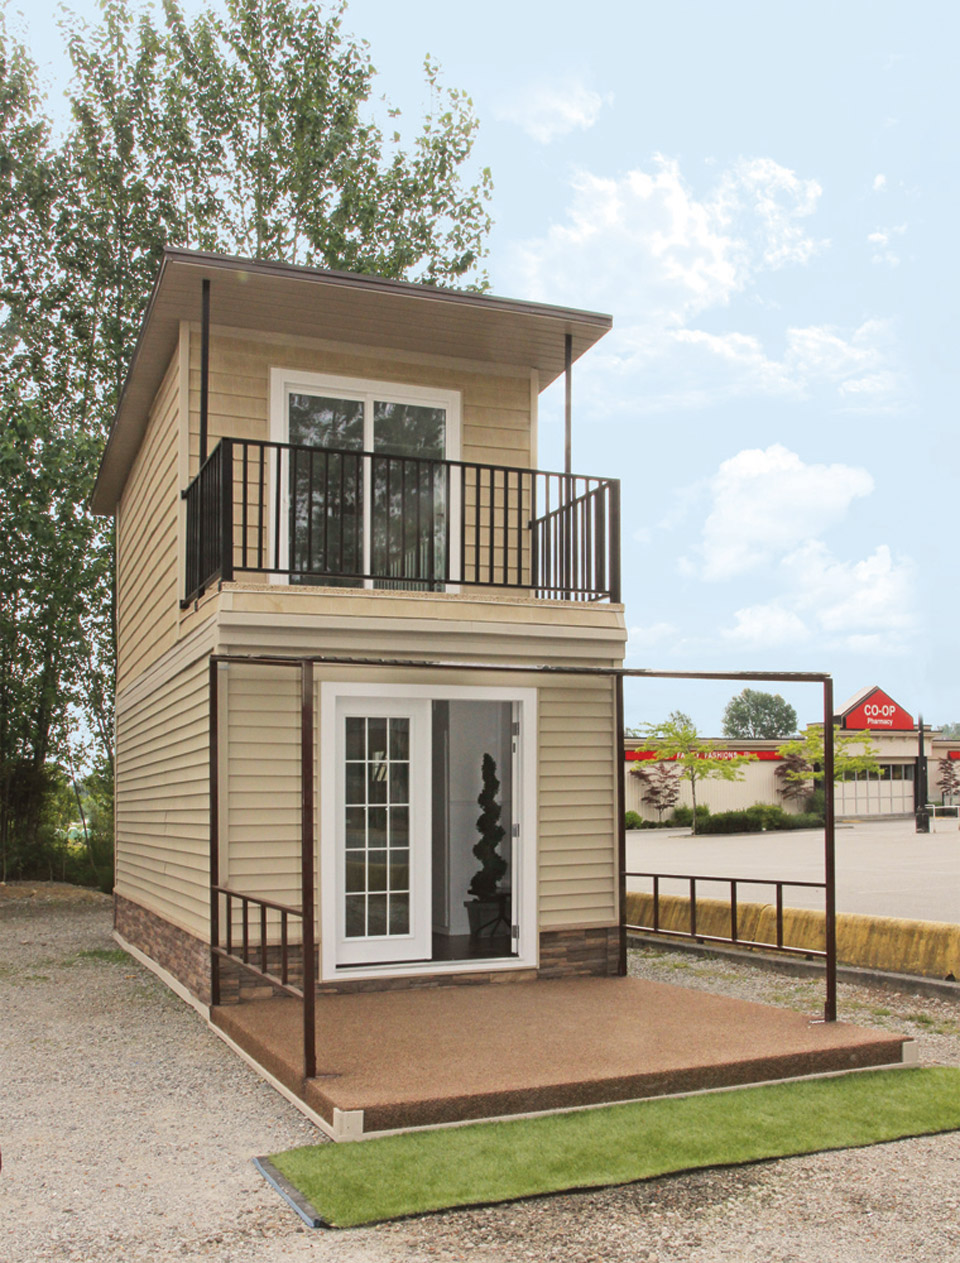 the eagle 1 a 350 sq ft 2 story steel framed micro home - Two Story Tiny House